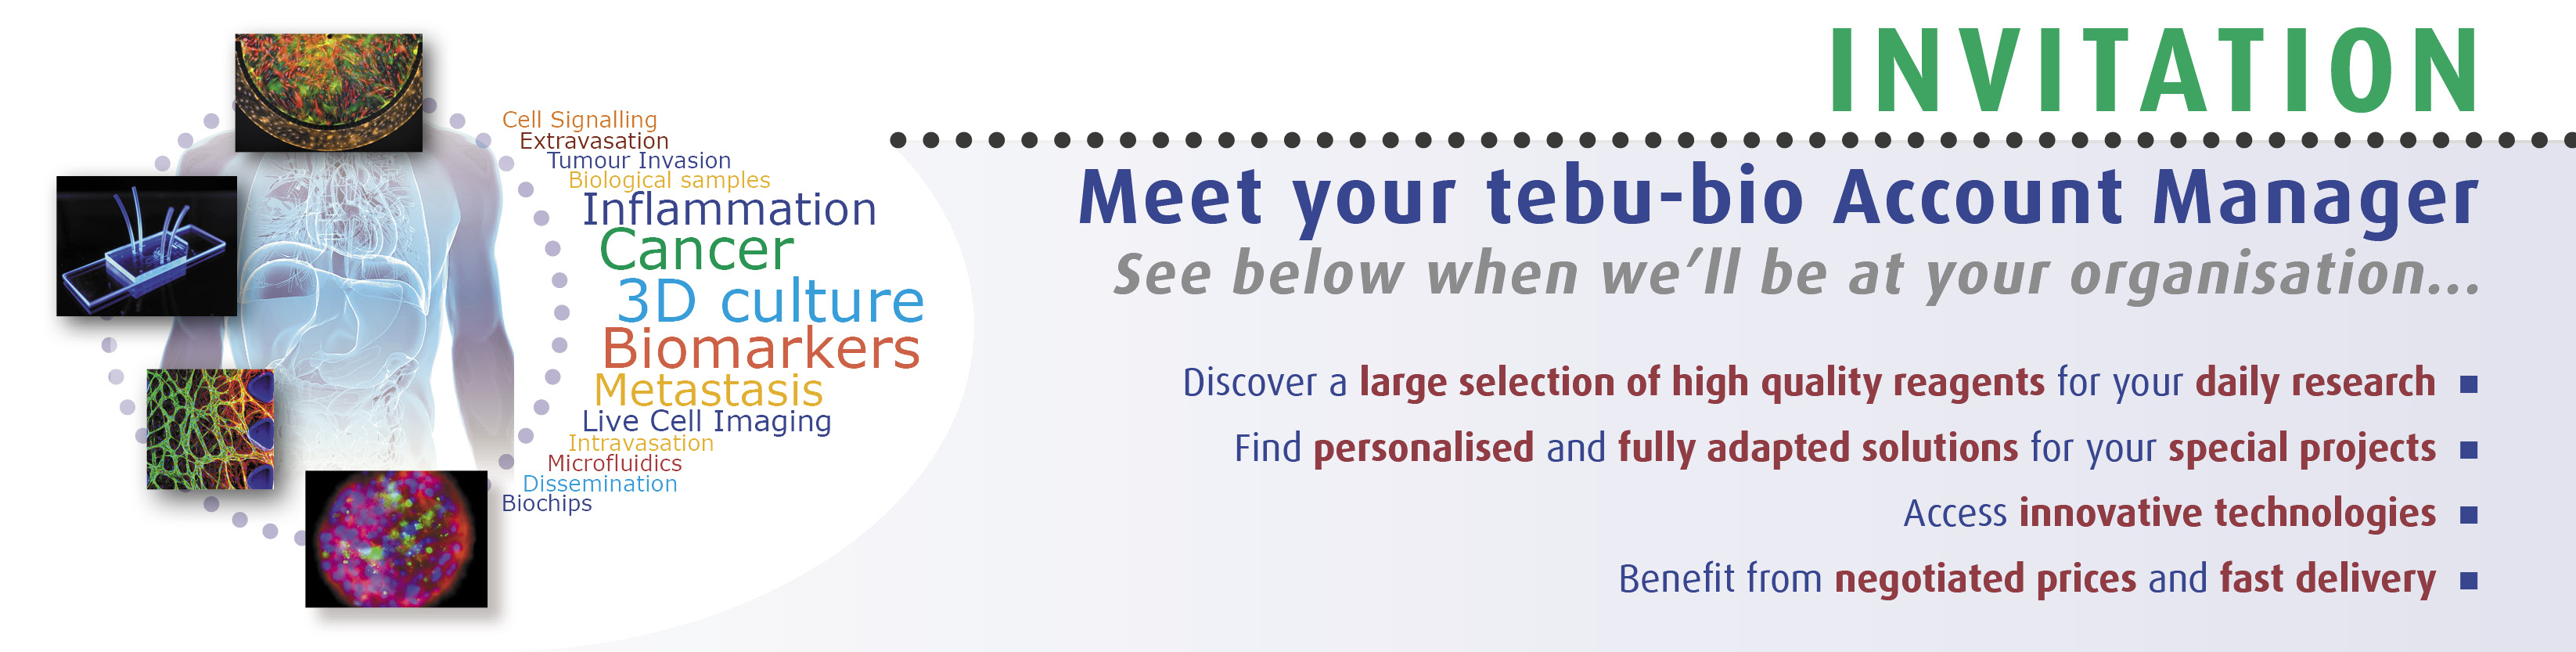 tebu-bio will be at Meet your tebu-bio Account Manager - Cambridge Institute for Medical Research